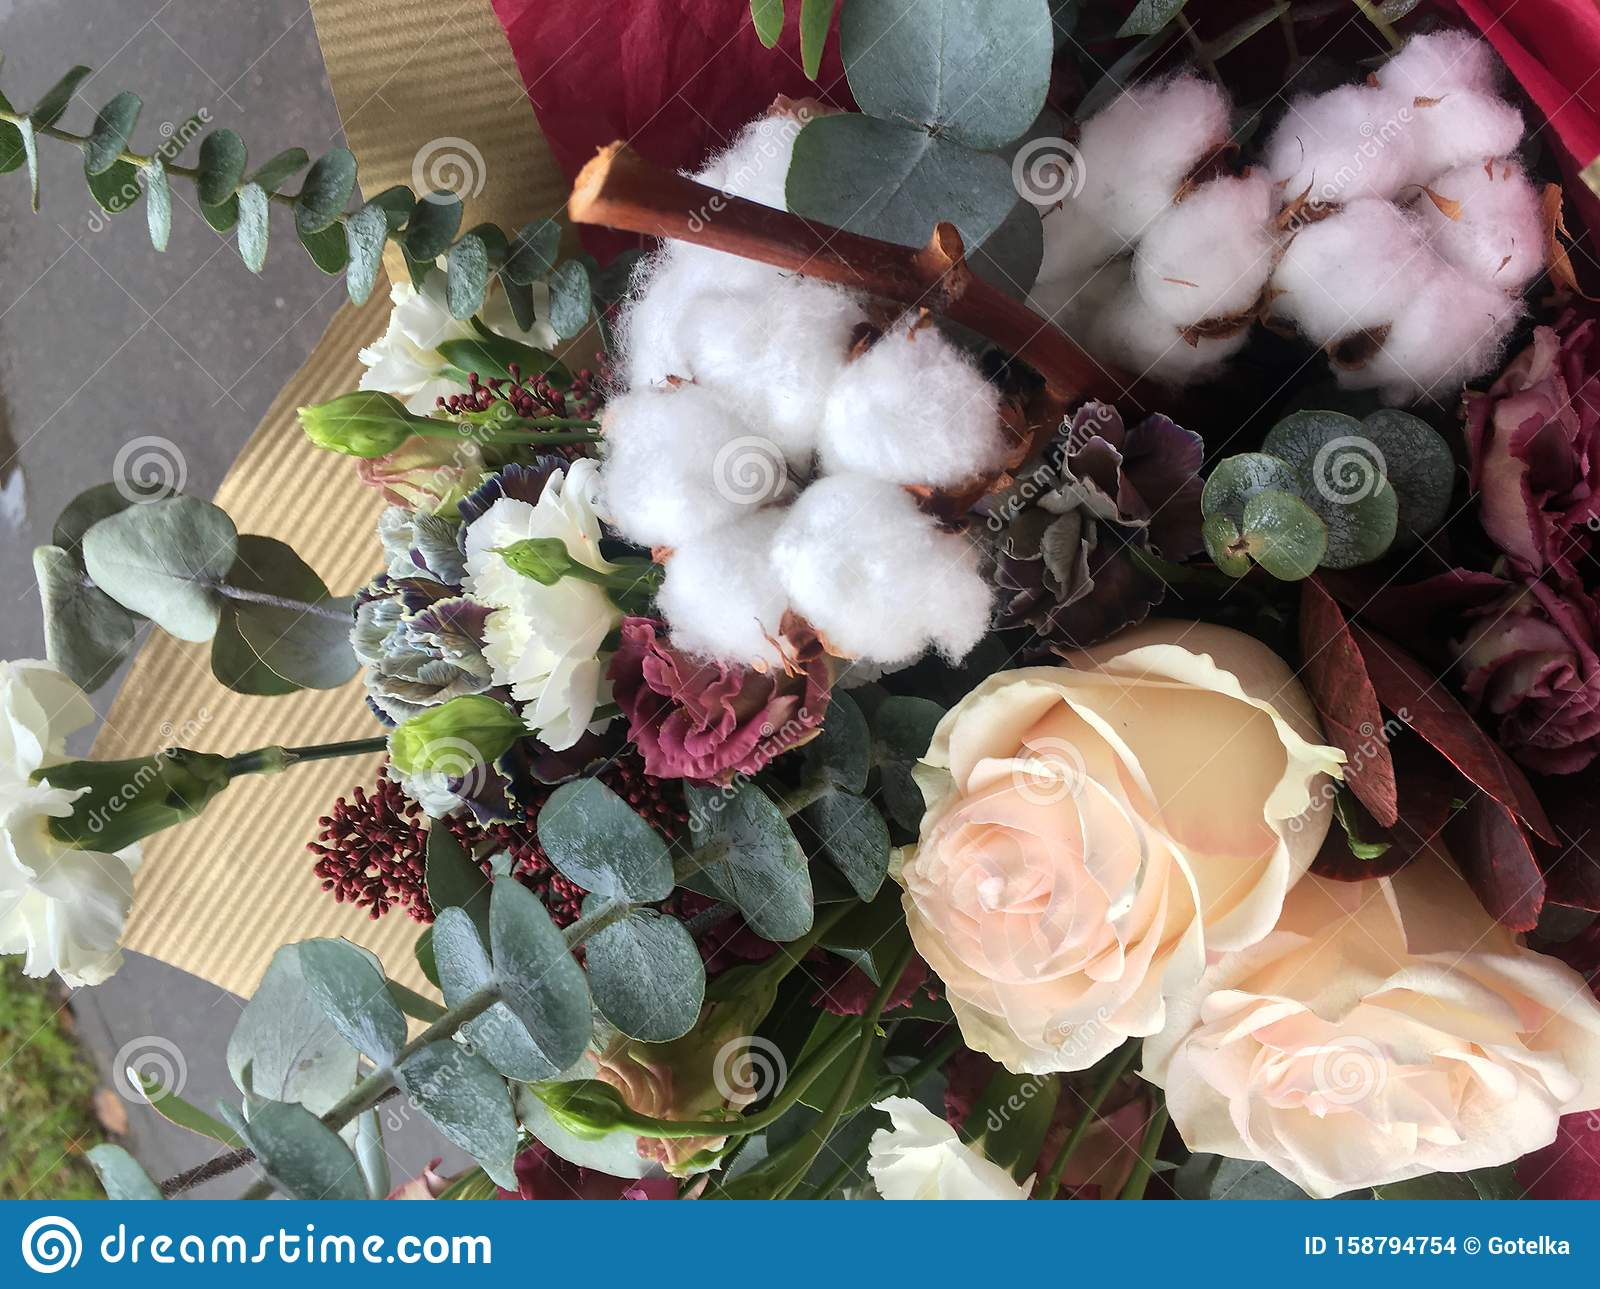 Christmas Winter Bouquet Of Fresh Flower And White Cotton A Bouquet Of Fresh Roses Eucalyptus Green Fir Branches Stock Photo Image Of Berry Holiday 158794754